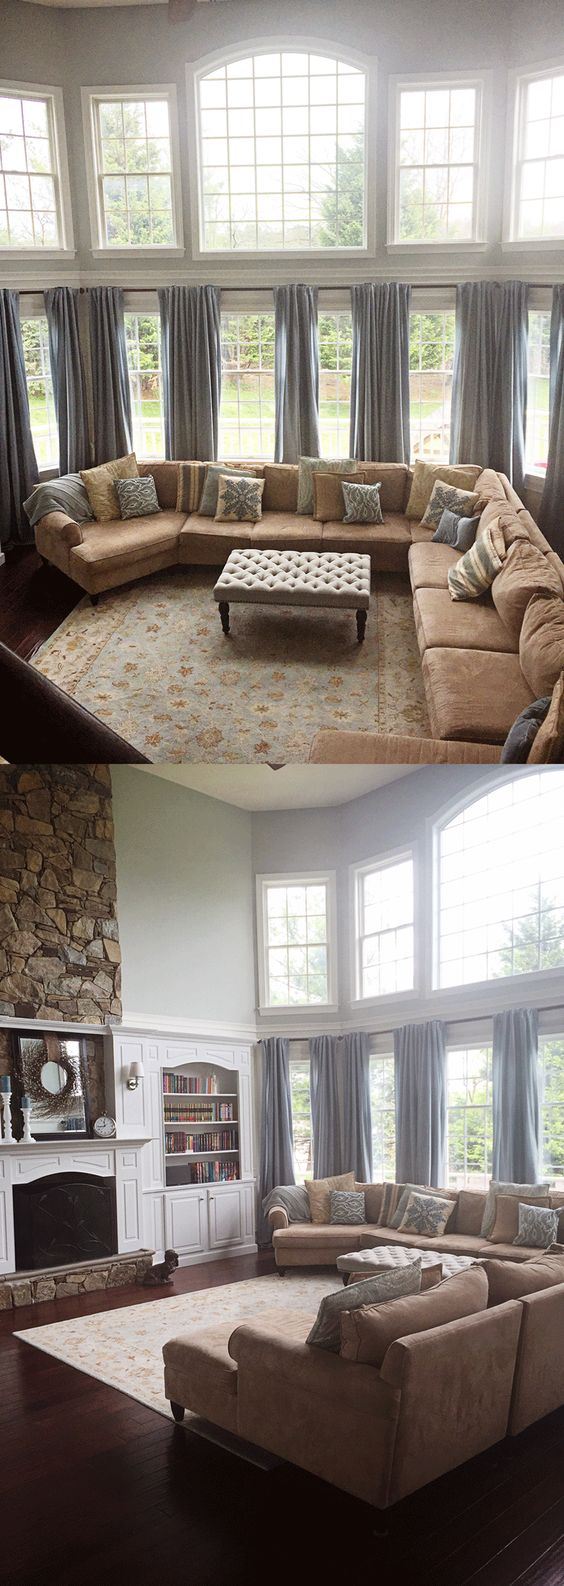 Best window treatment for a wall of windows with windows on top of it, makes room seem cozy despite all the windows that tend to draw the eye everywhere.